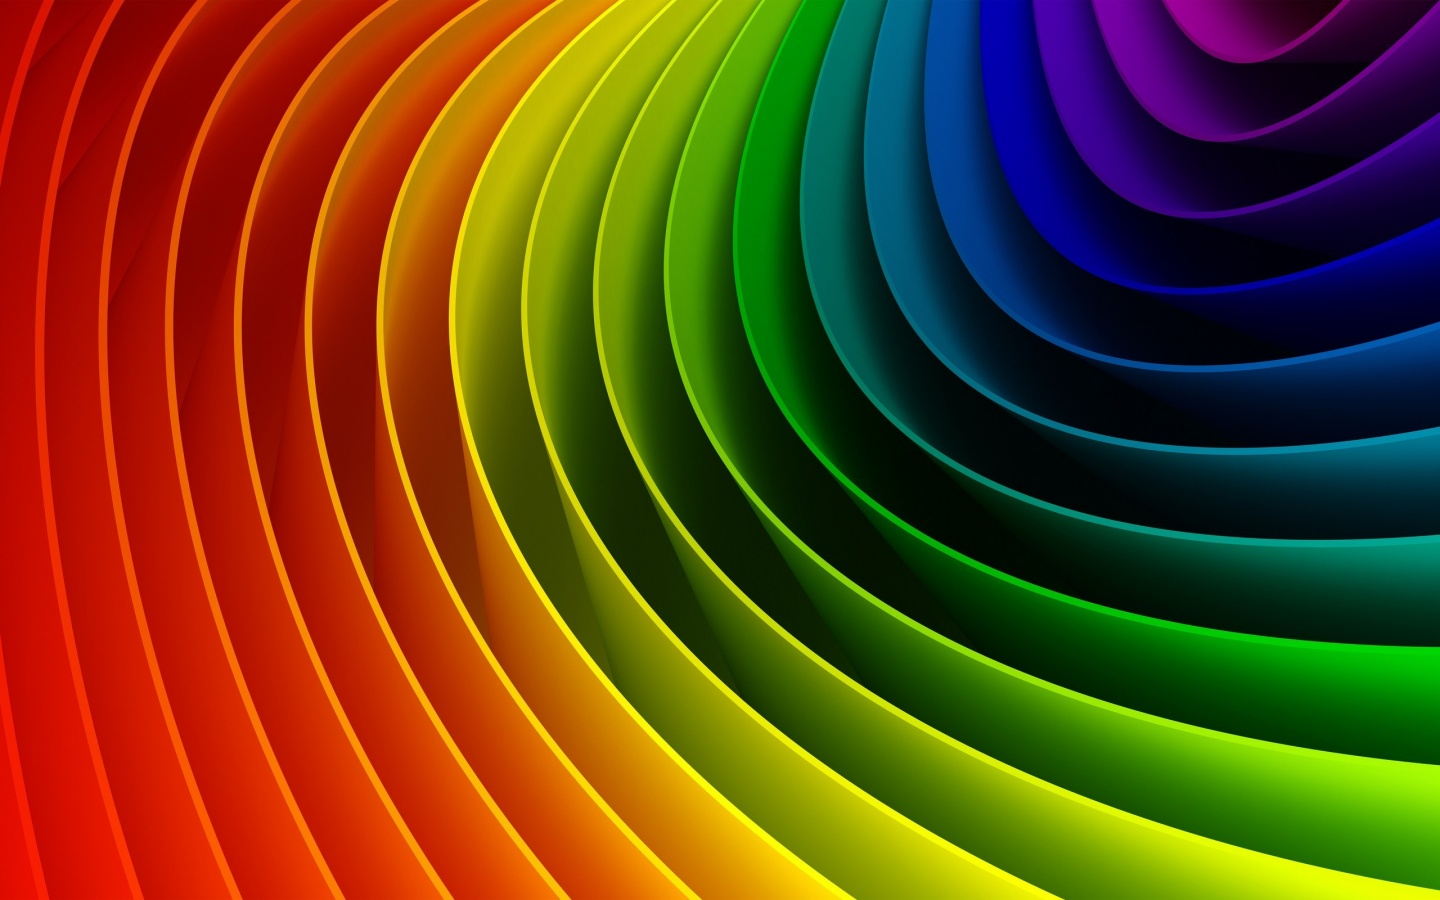 1440x900 Curved colorful rainbow desktop PC and Mac wallpaper